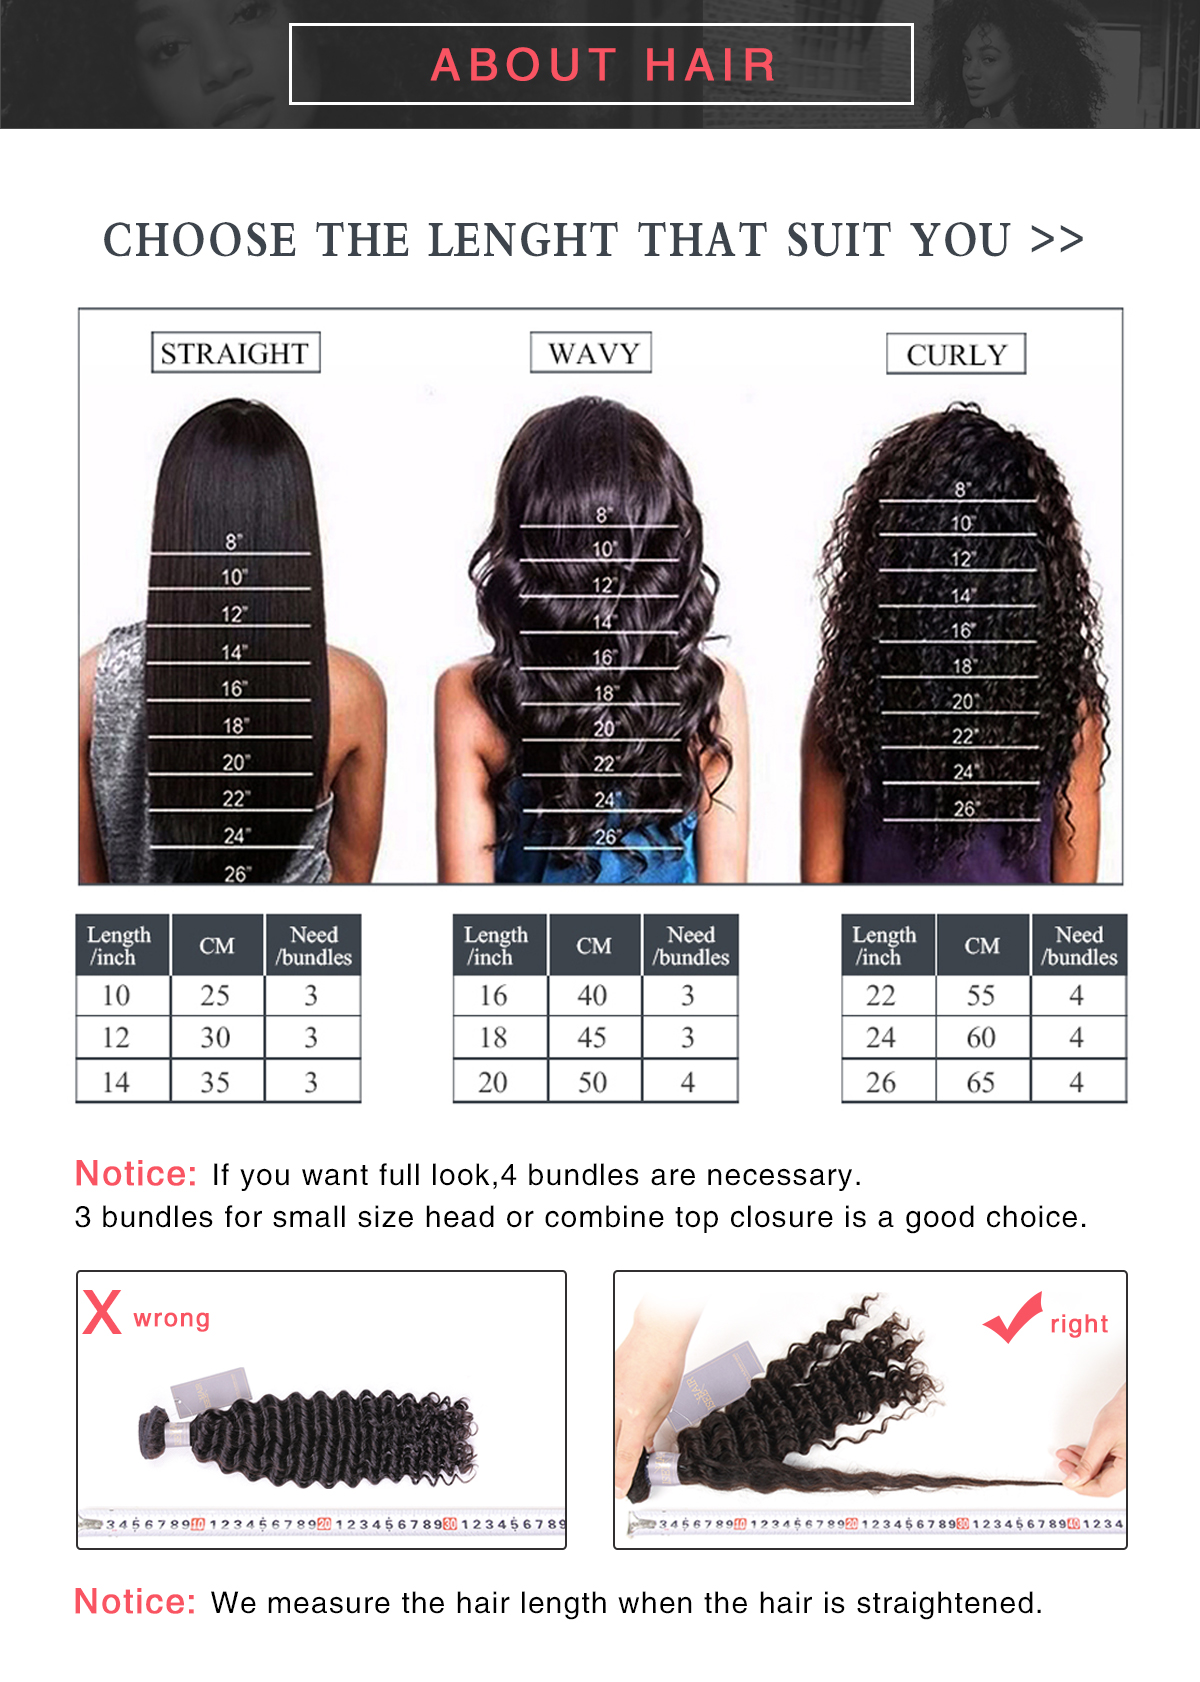 about how to measure different textures hair lengths